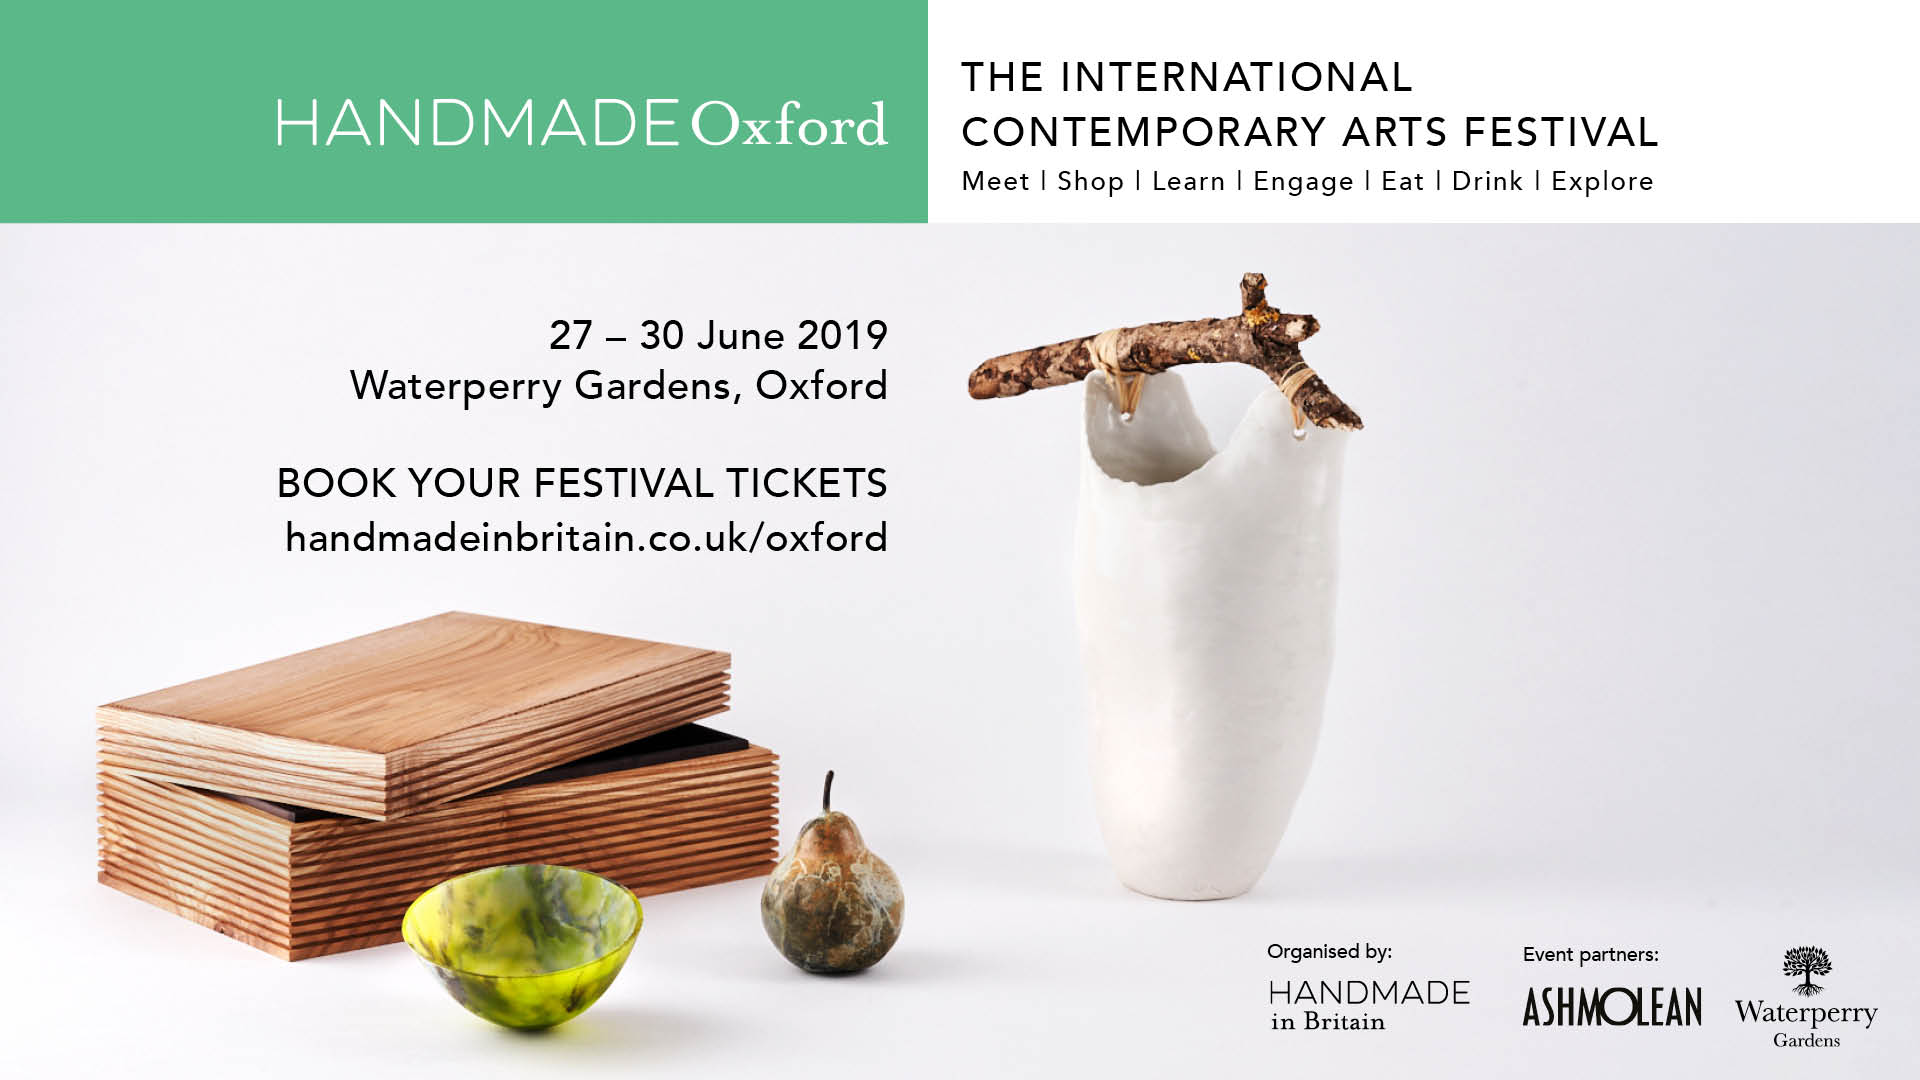 Handmade Oxford 2019_Social Media 1920x1080.jpg